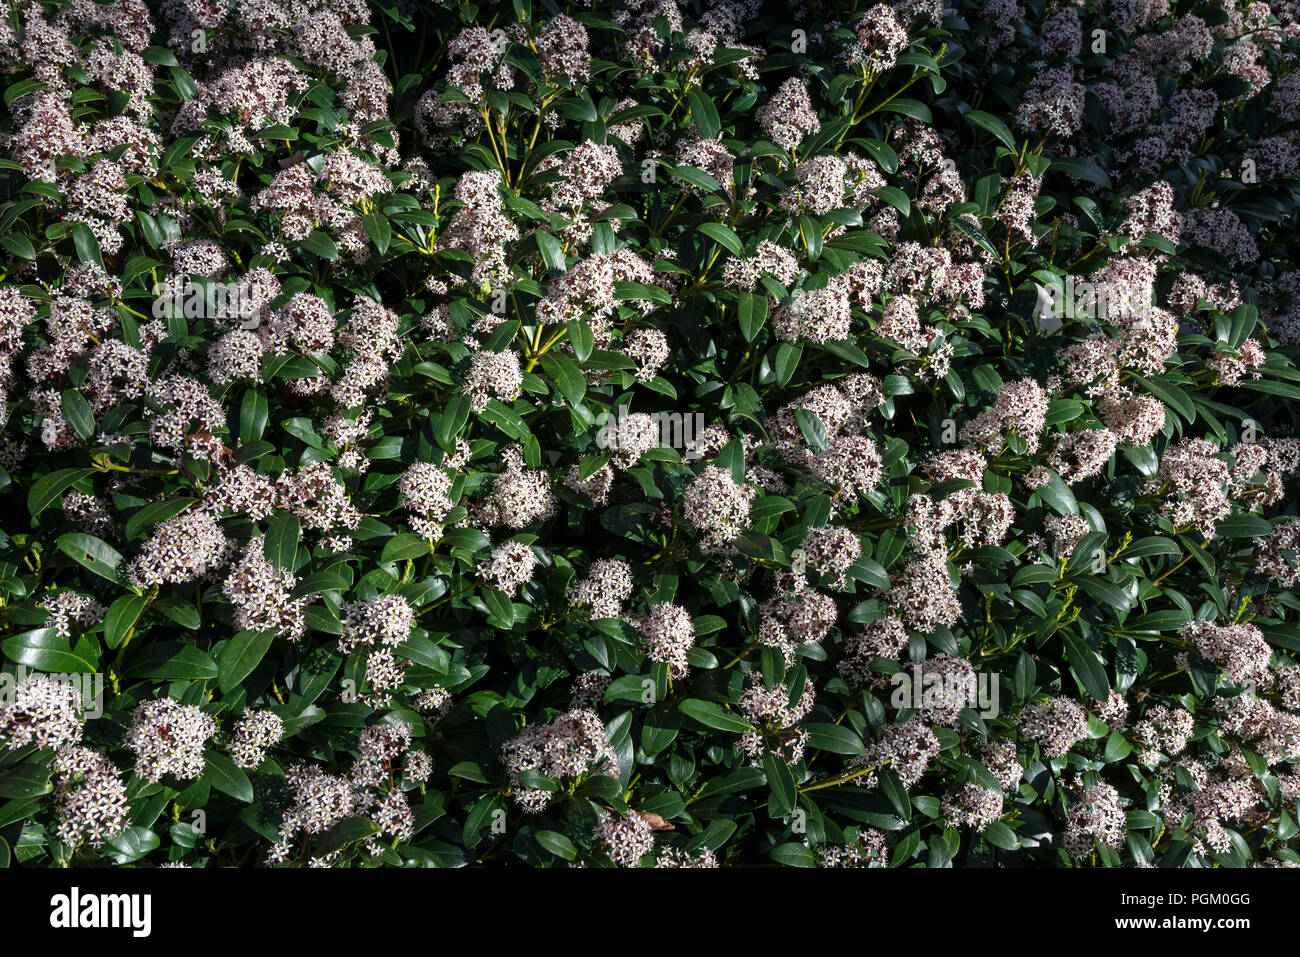 Skimmia Japonica Rubella in full bloom. An evergreen ornamental shrub flowering in spring. - Stock Image